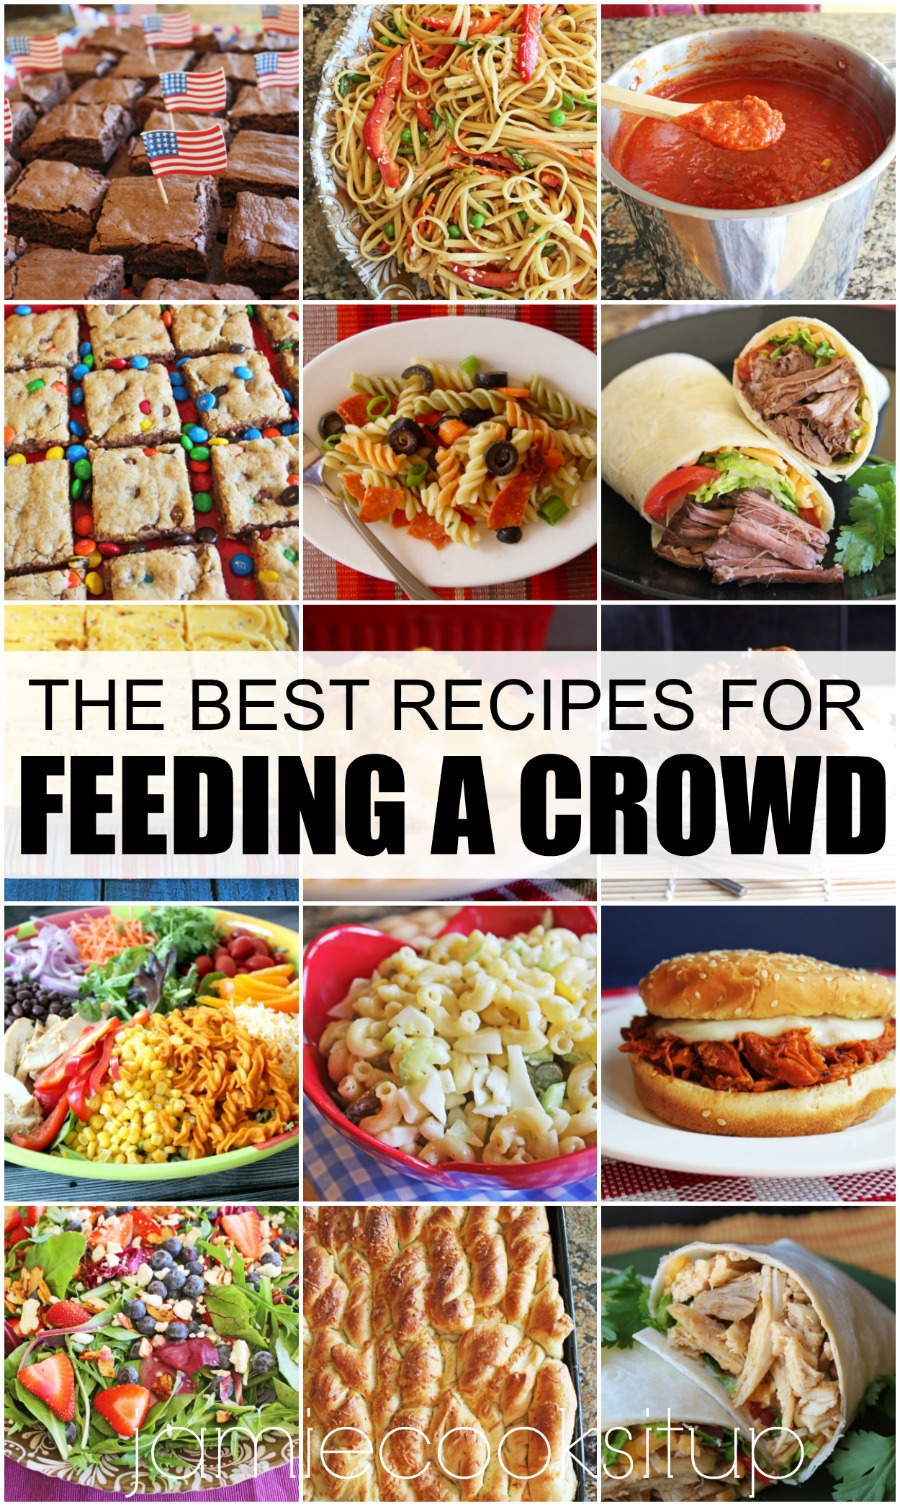 The Best Recipes for Feeding A Crowd (Girls Camp, Family Reunions, Youth Groups, etc)